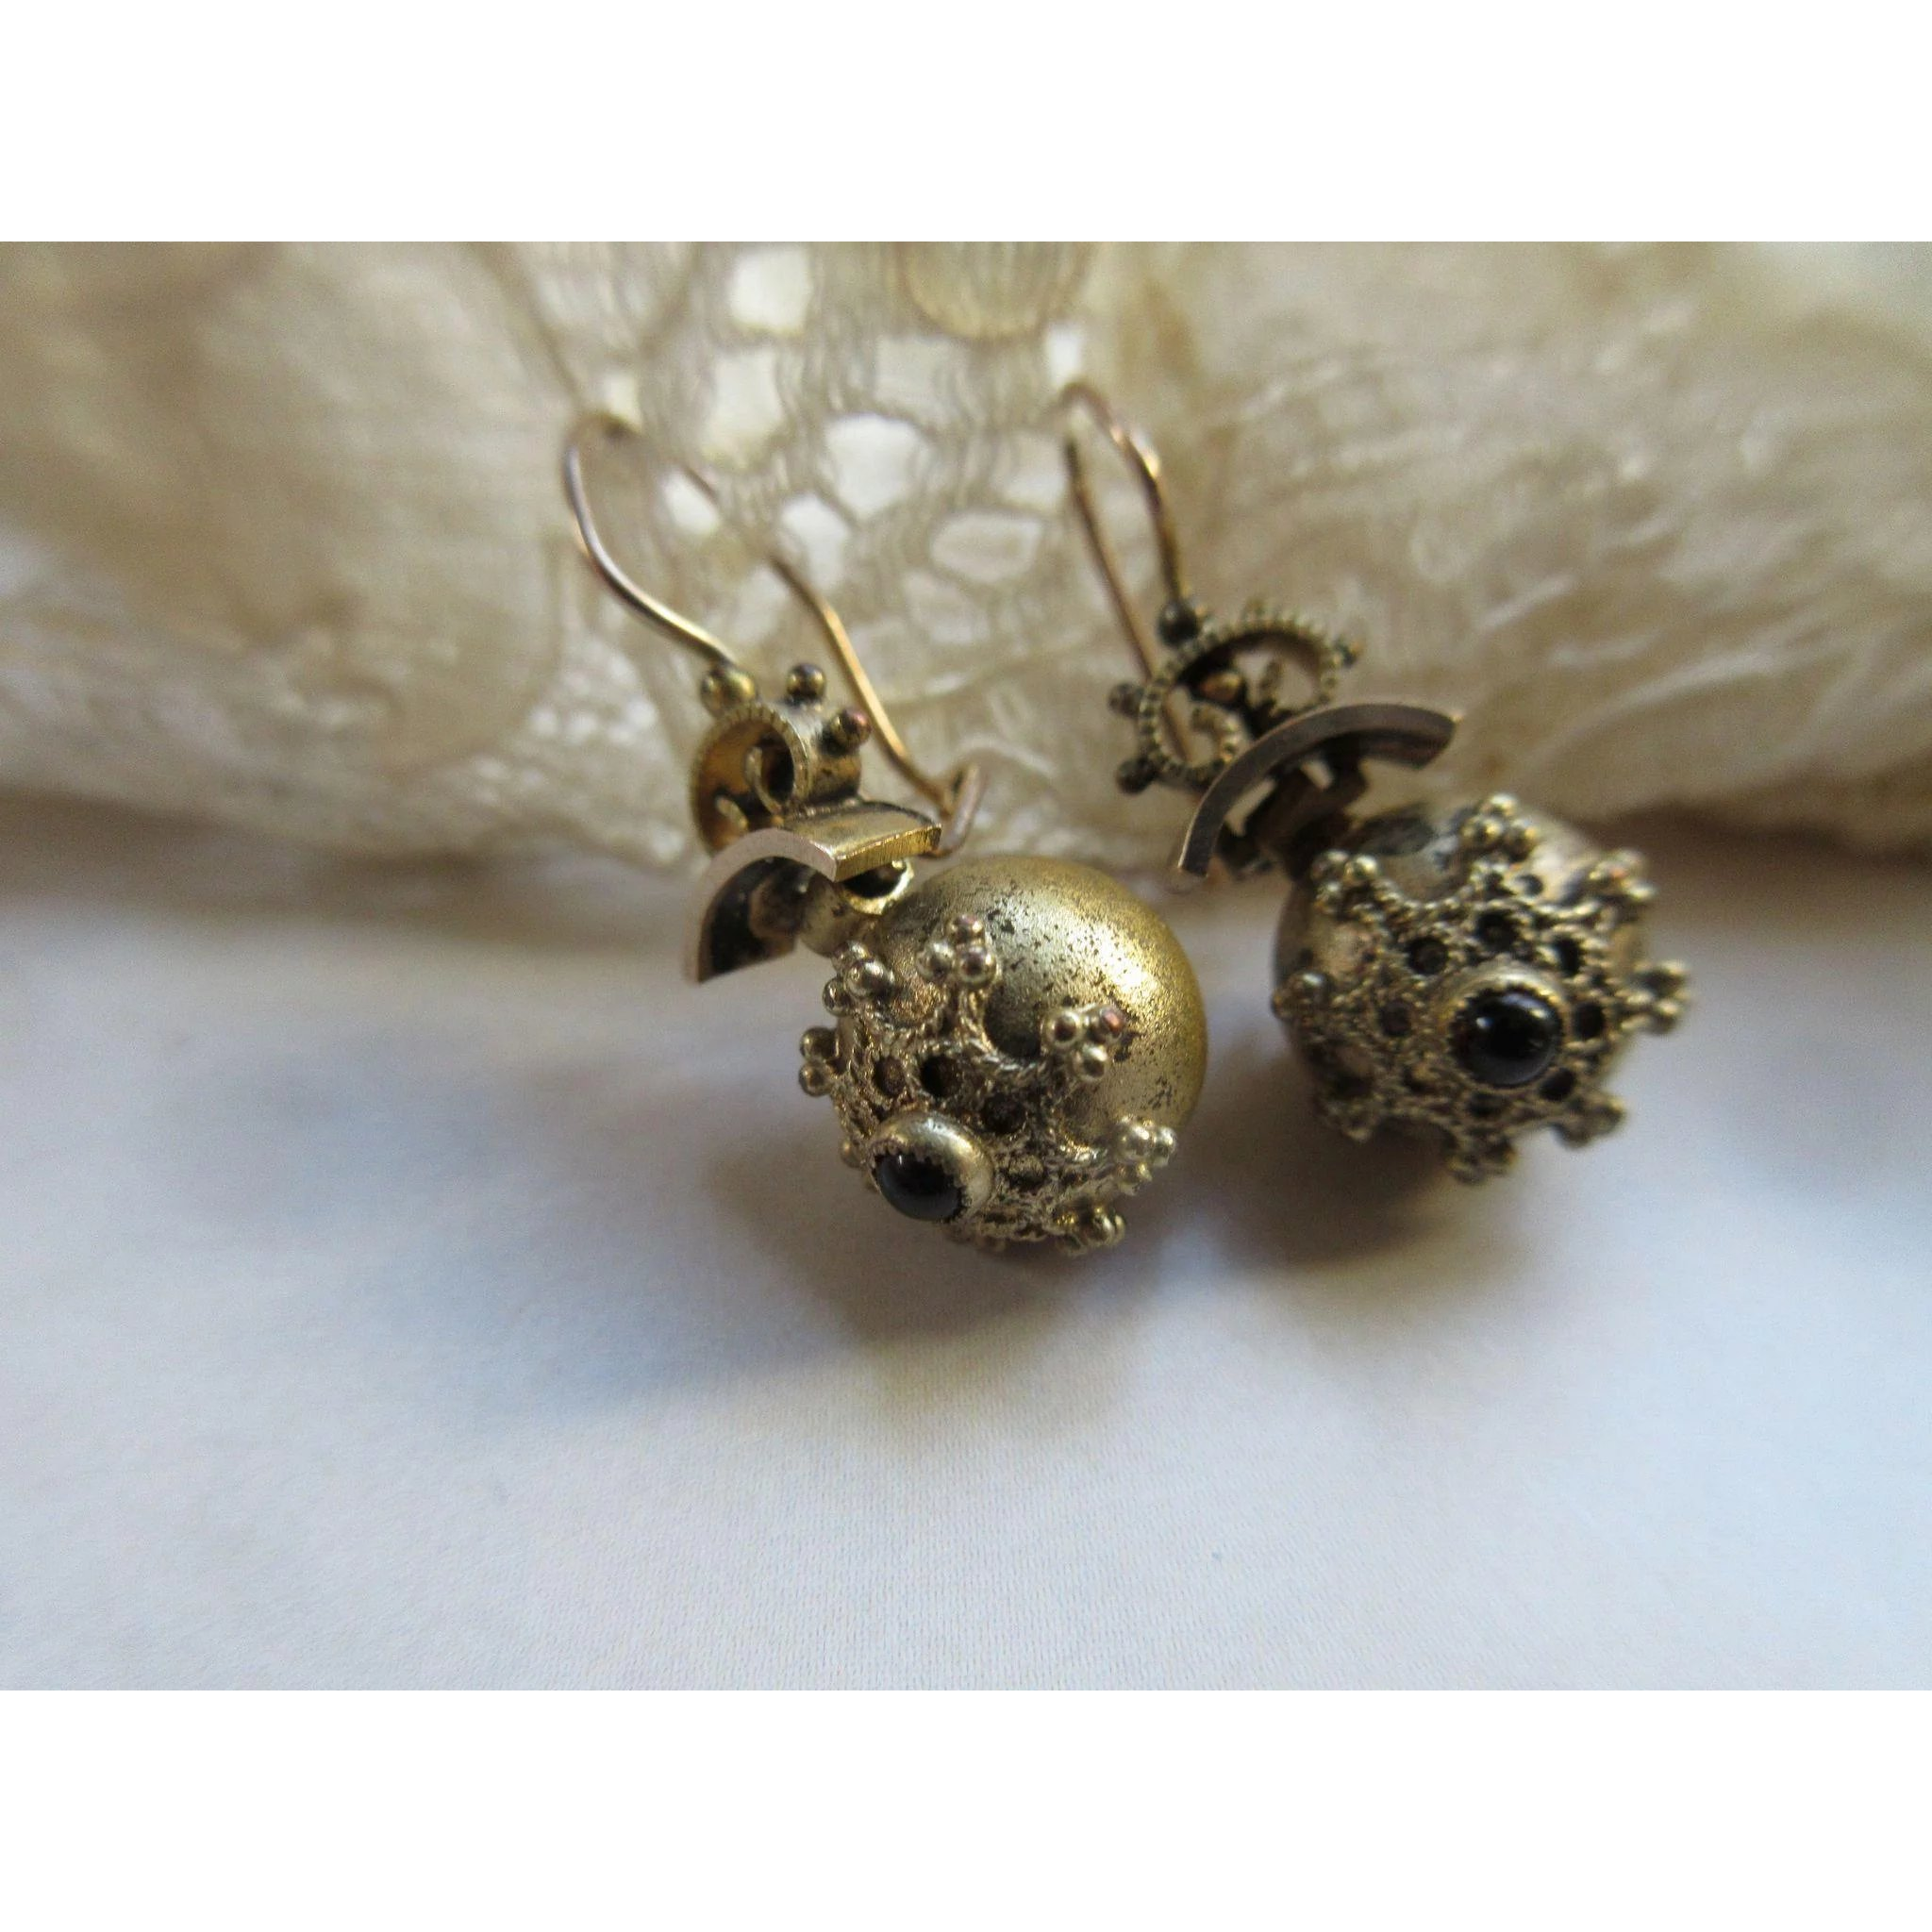 gold earrings jewelry scrolls w pearls shop victorian sentimental english antique turquoise